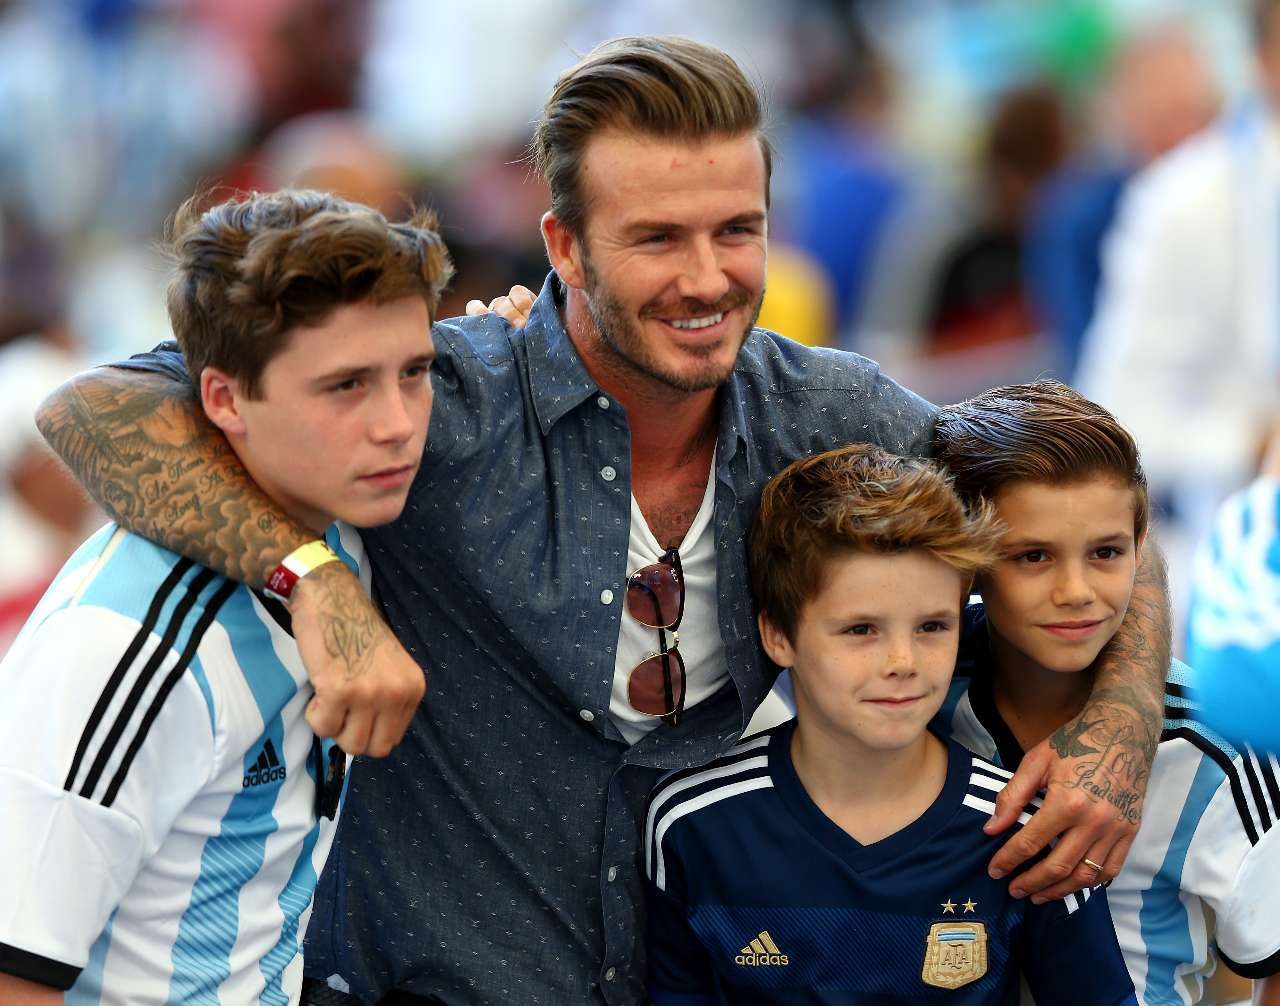 david-beckham-kids-getty-michael-steele